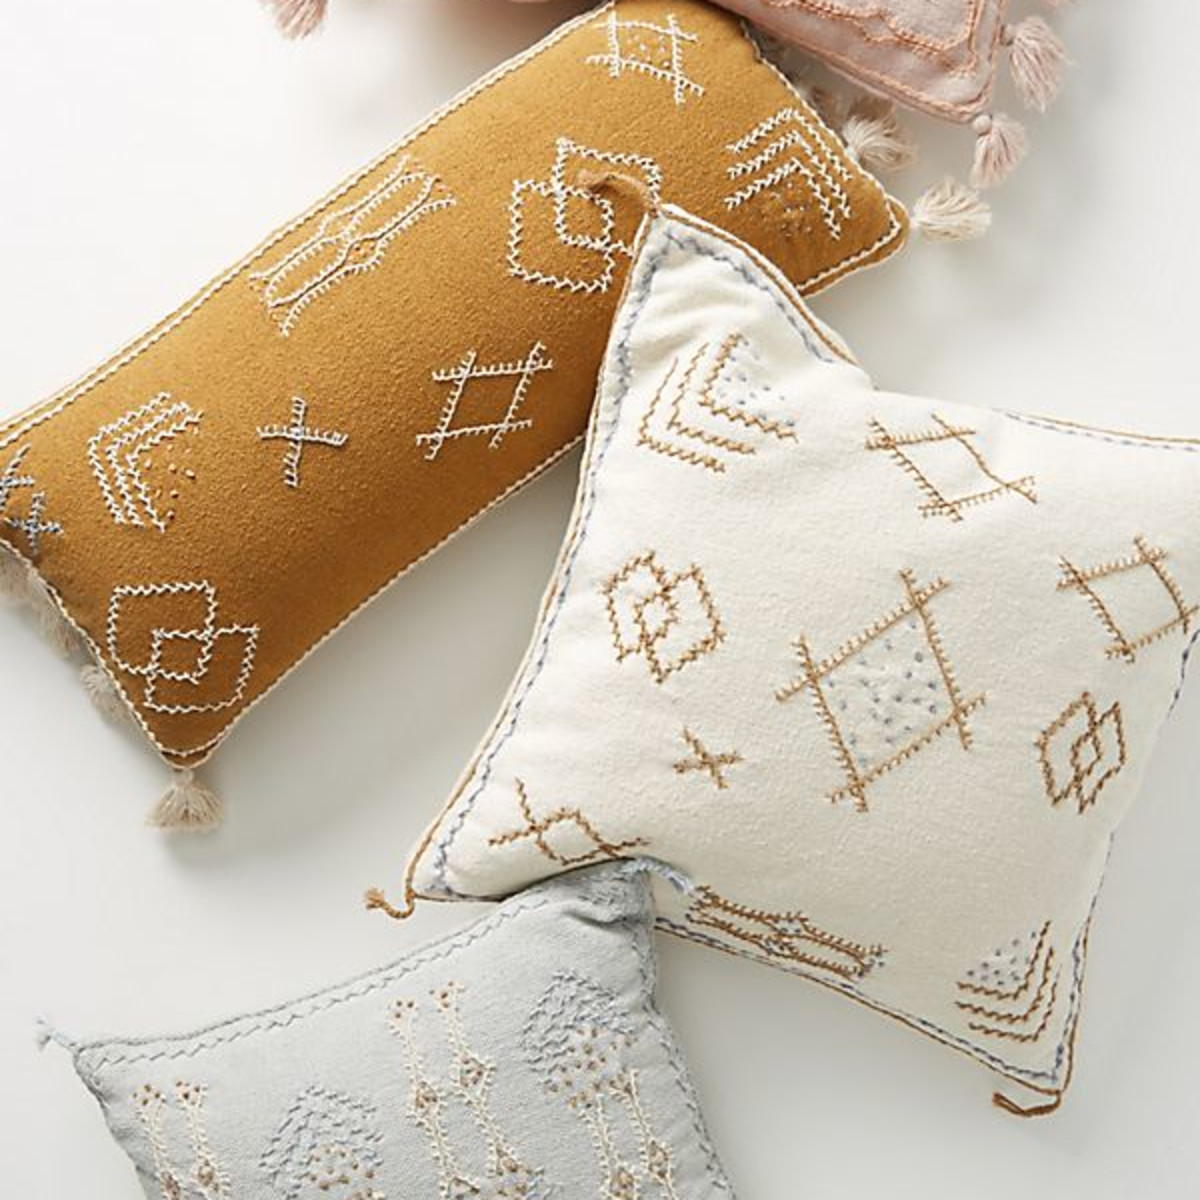 Joanna Gaines for Anthropologie pillows